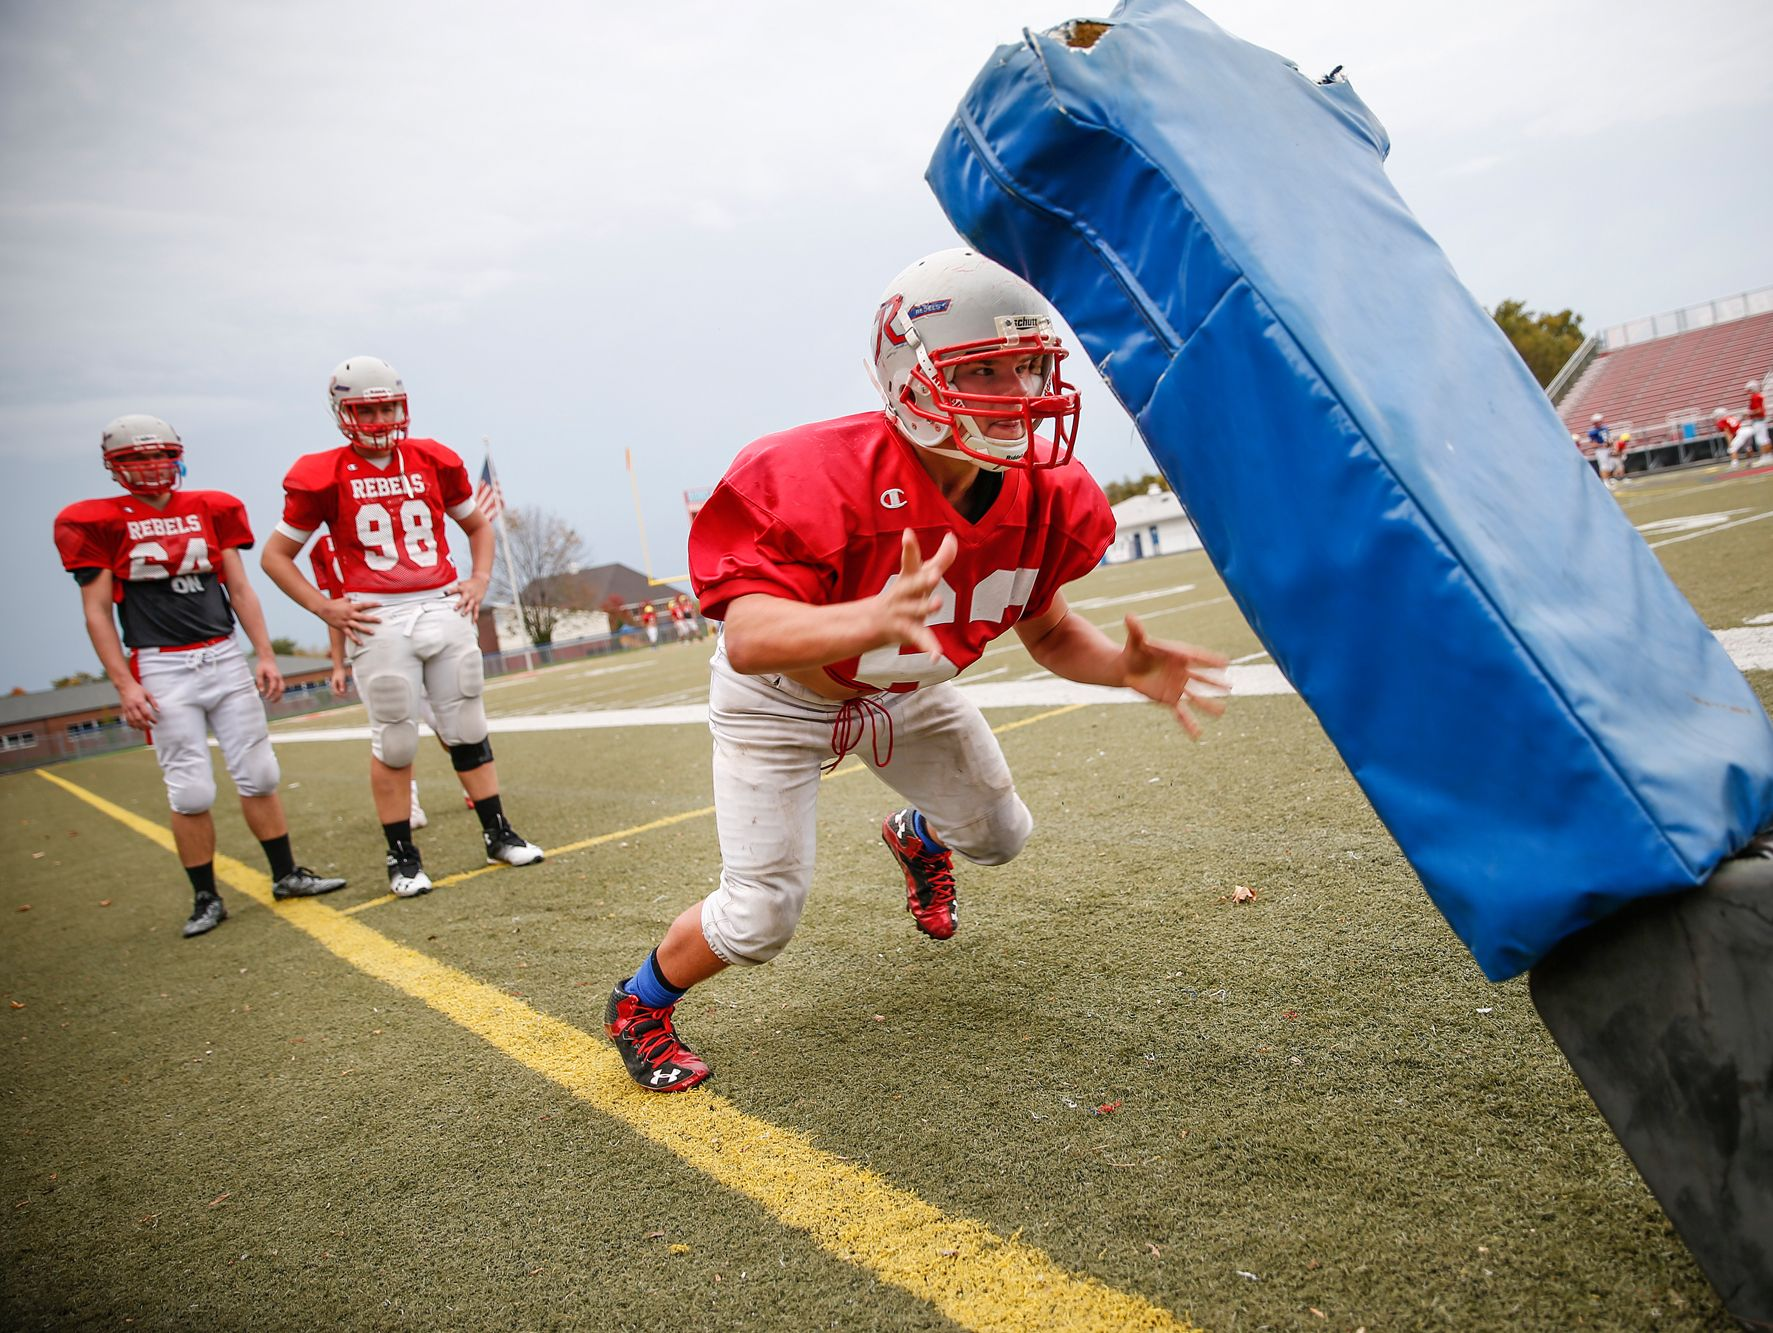 Roncalli Rebels nose tackle Max Quebe, a 5-foot-2-inch, 135-pound Russian adoptee, works to drive back a sled during practice on Oct. 19, 2016.